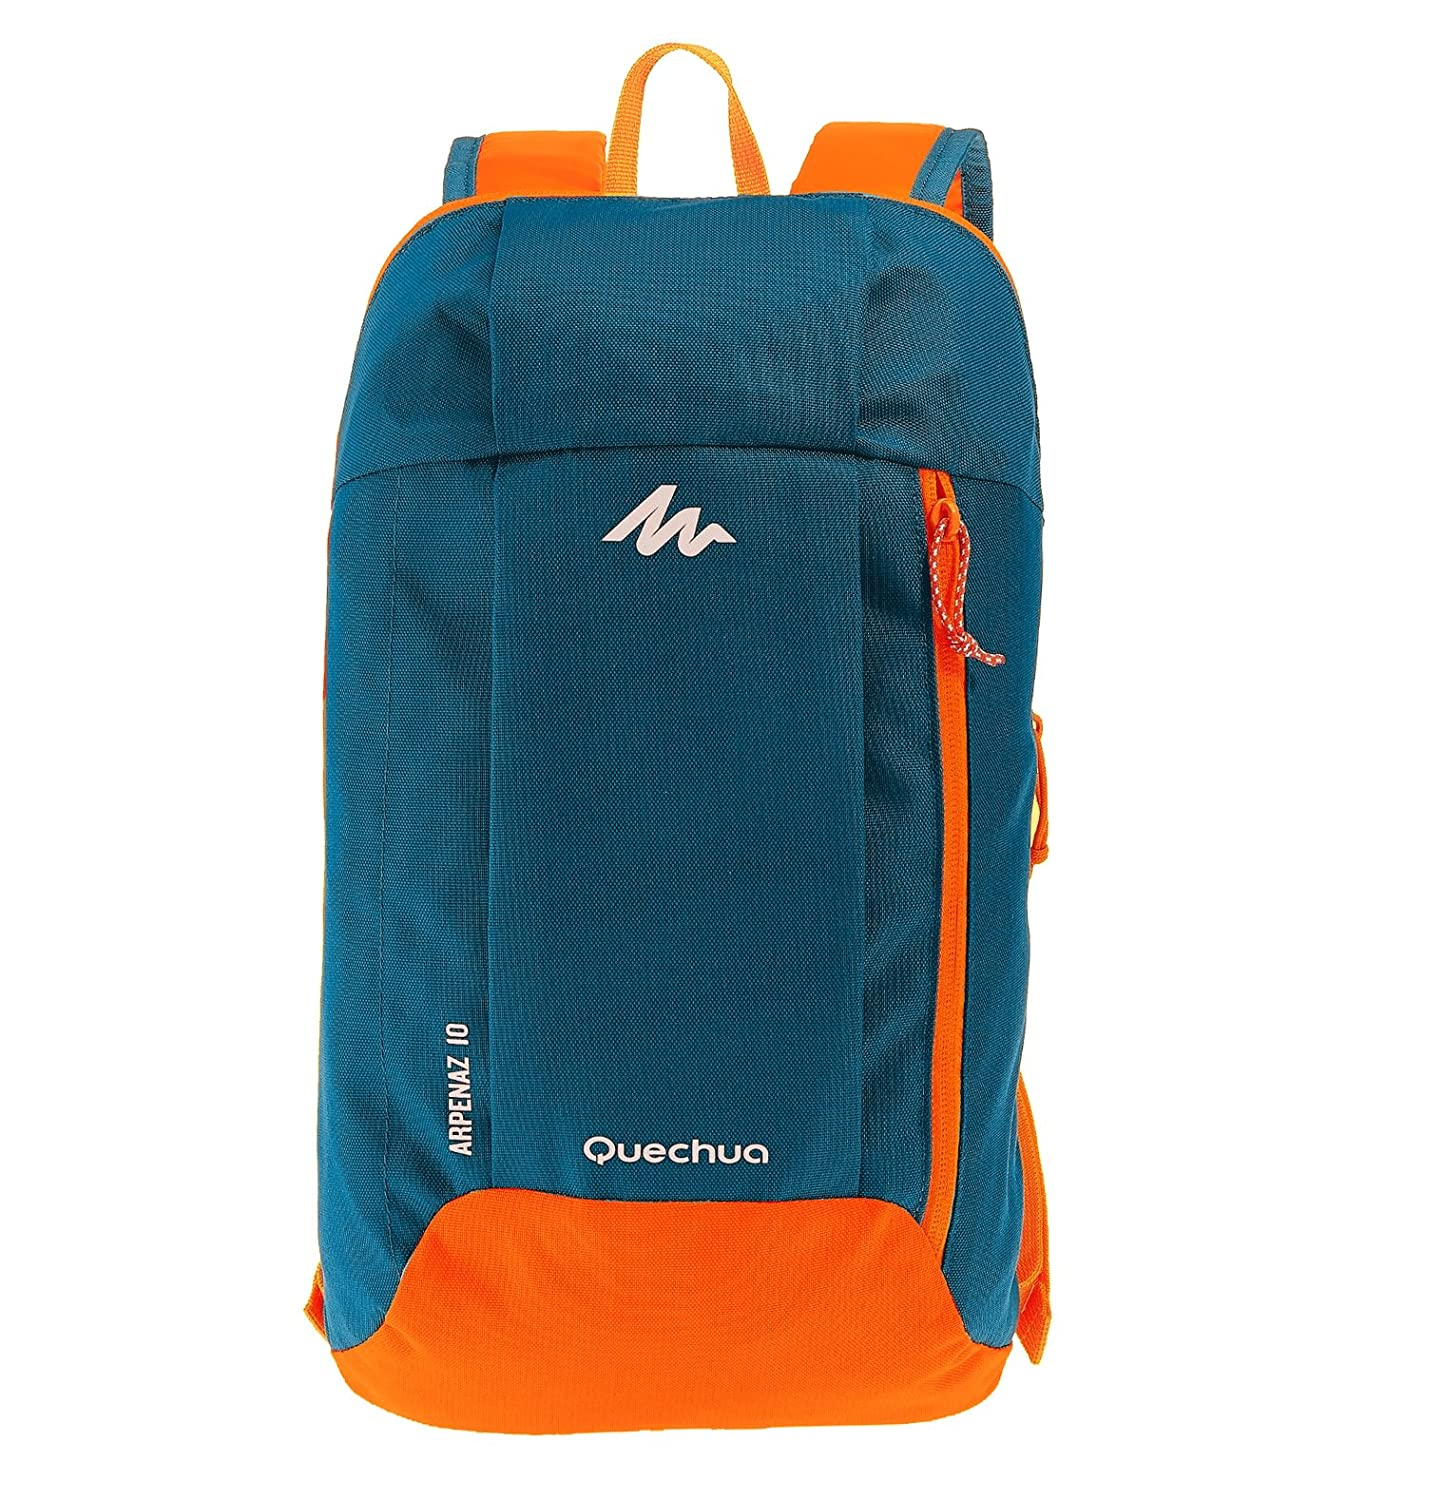 quechua kids outdoor travel backpack for hiking